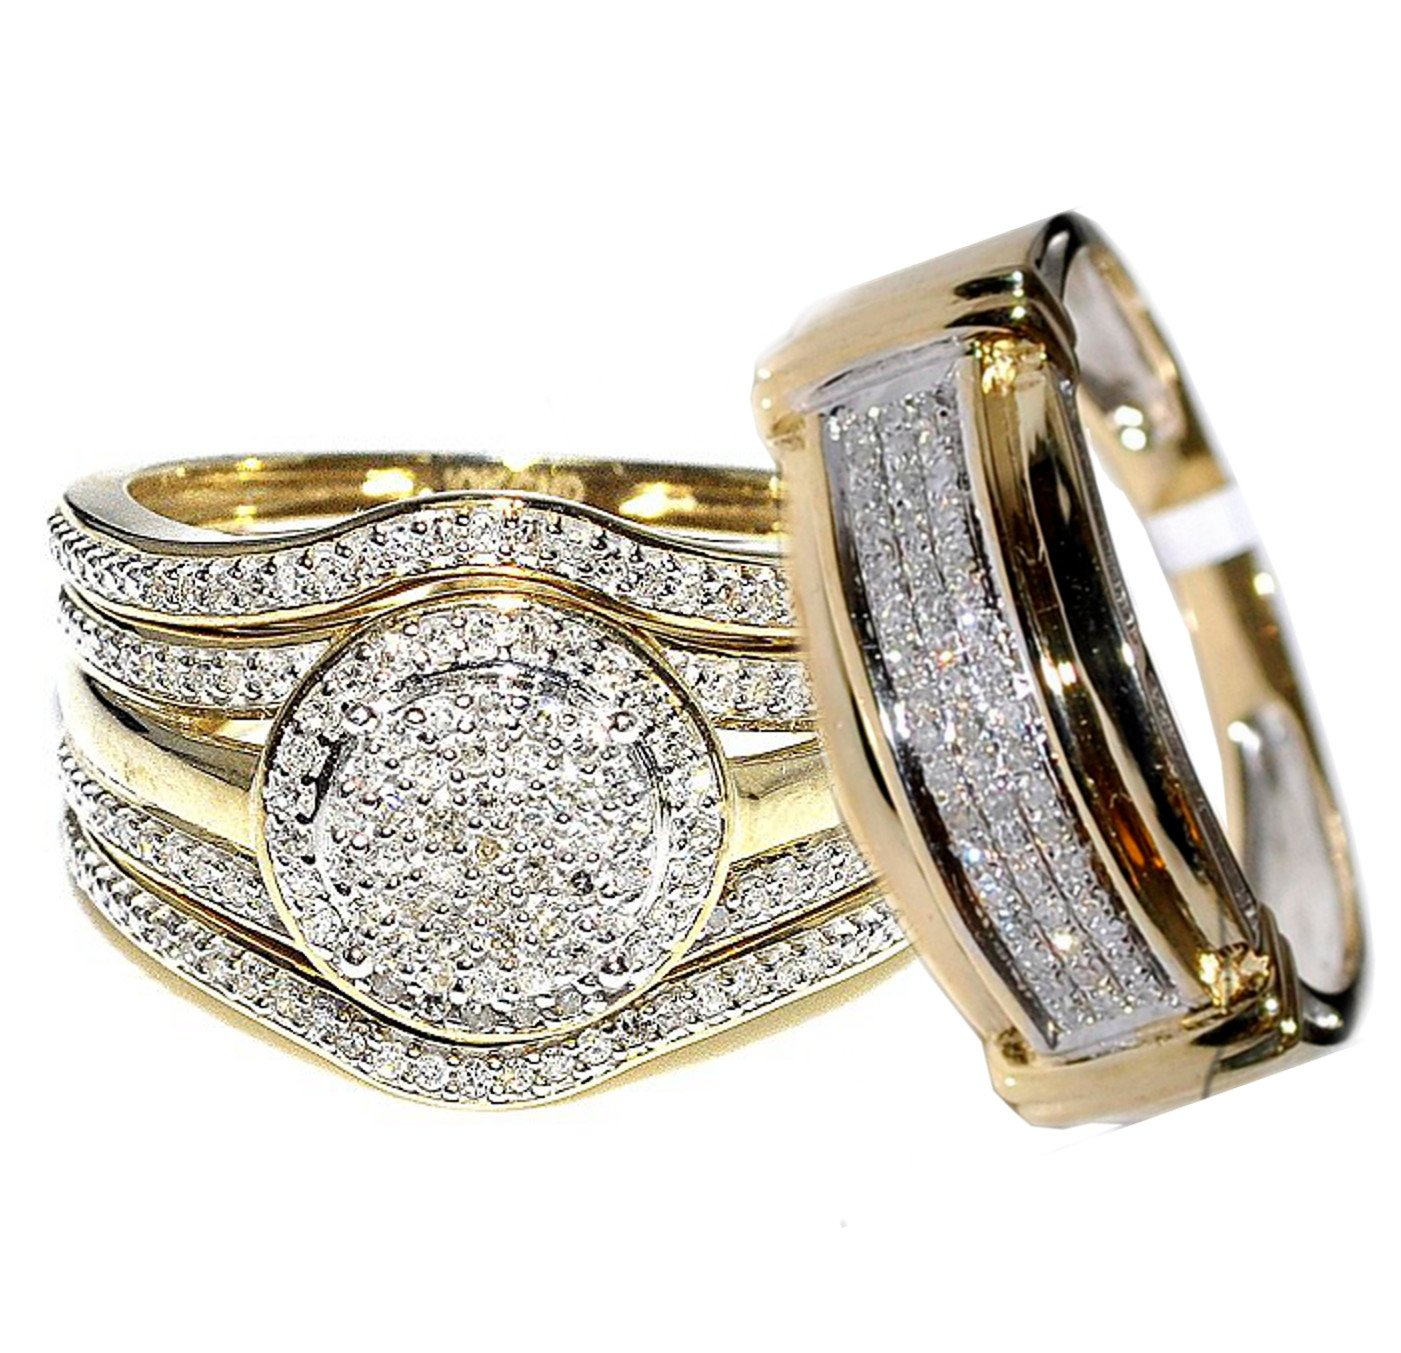 Rings-MidwestJewellery.com 4-Piece 10K Yellow Gold 0.66carats Diamonds 19mm Wide Halo Style His and Her Bridal Trio Rings Set (I-J Color, I2-I3 Clarity) by Midwest Jewellery